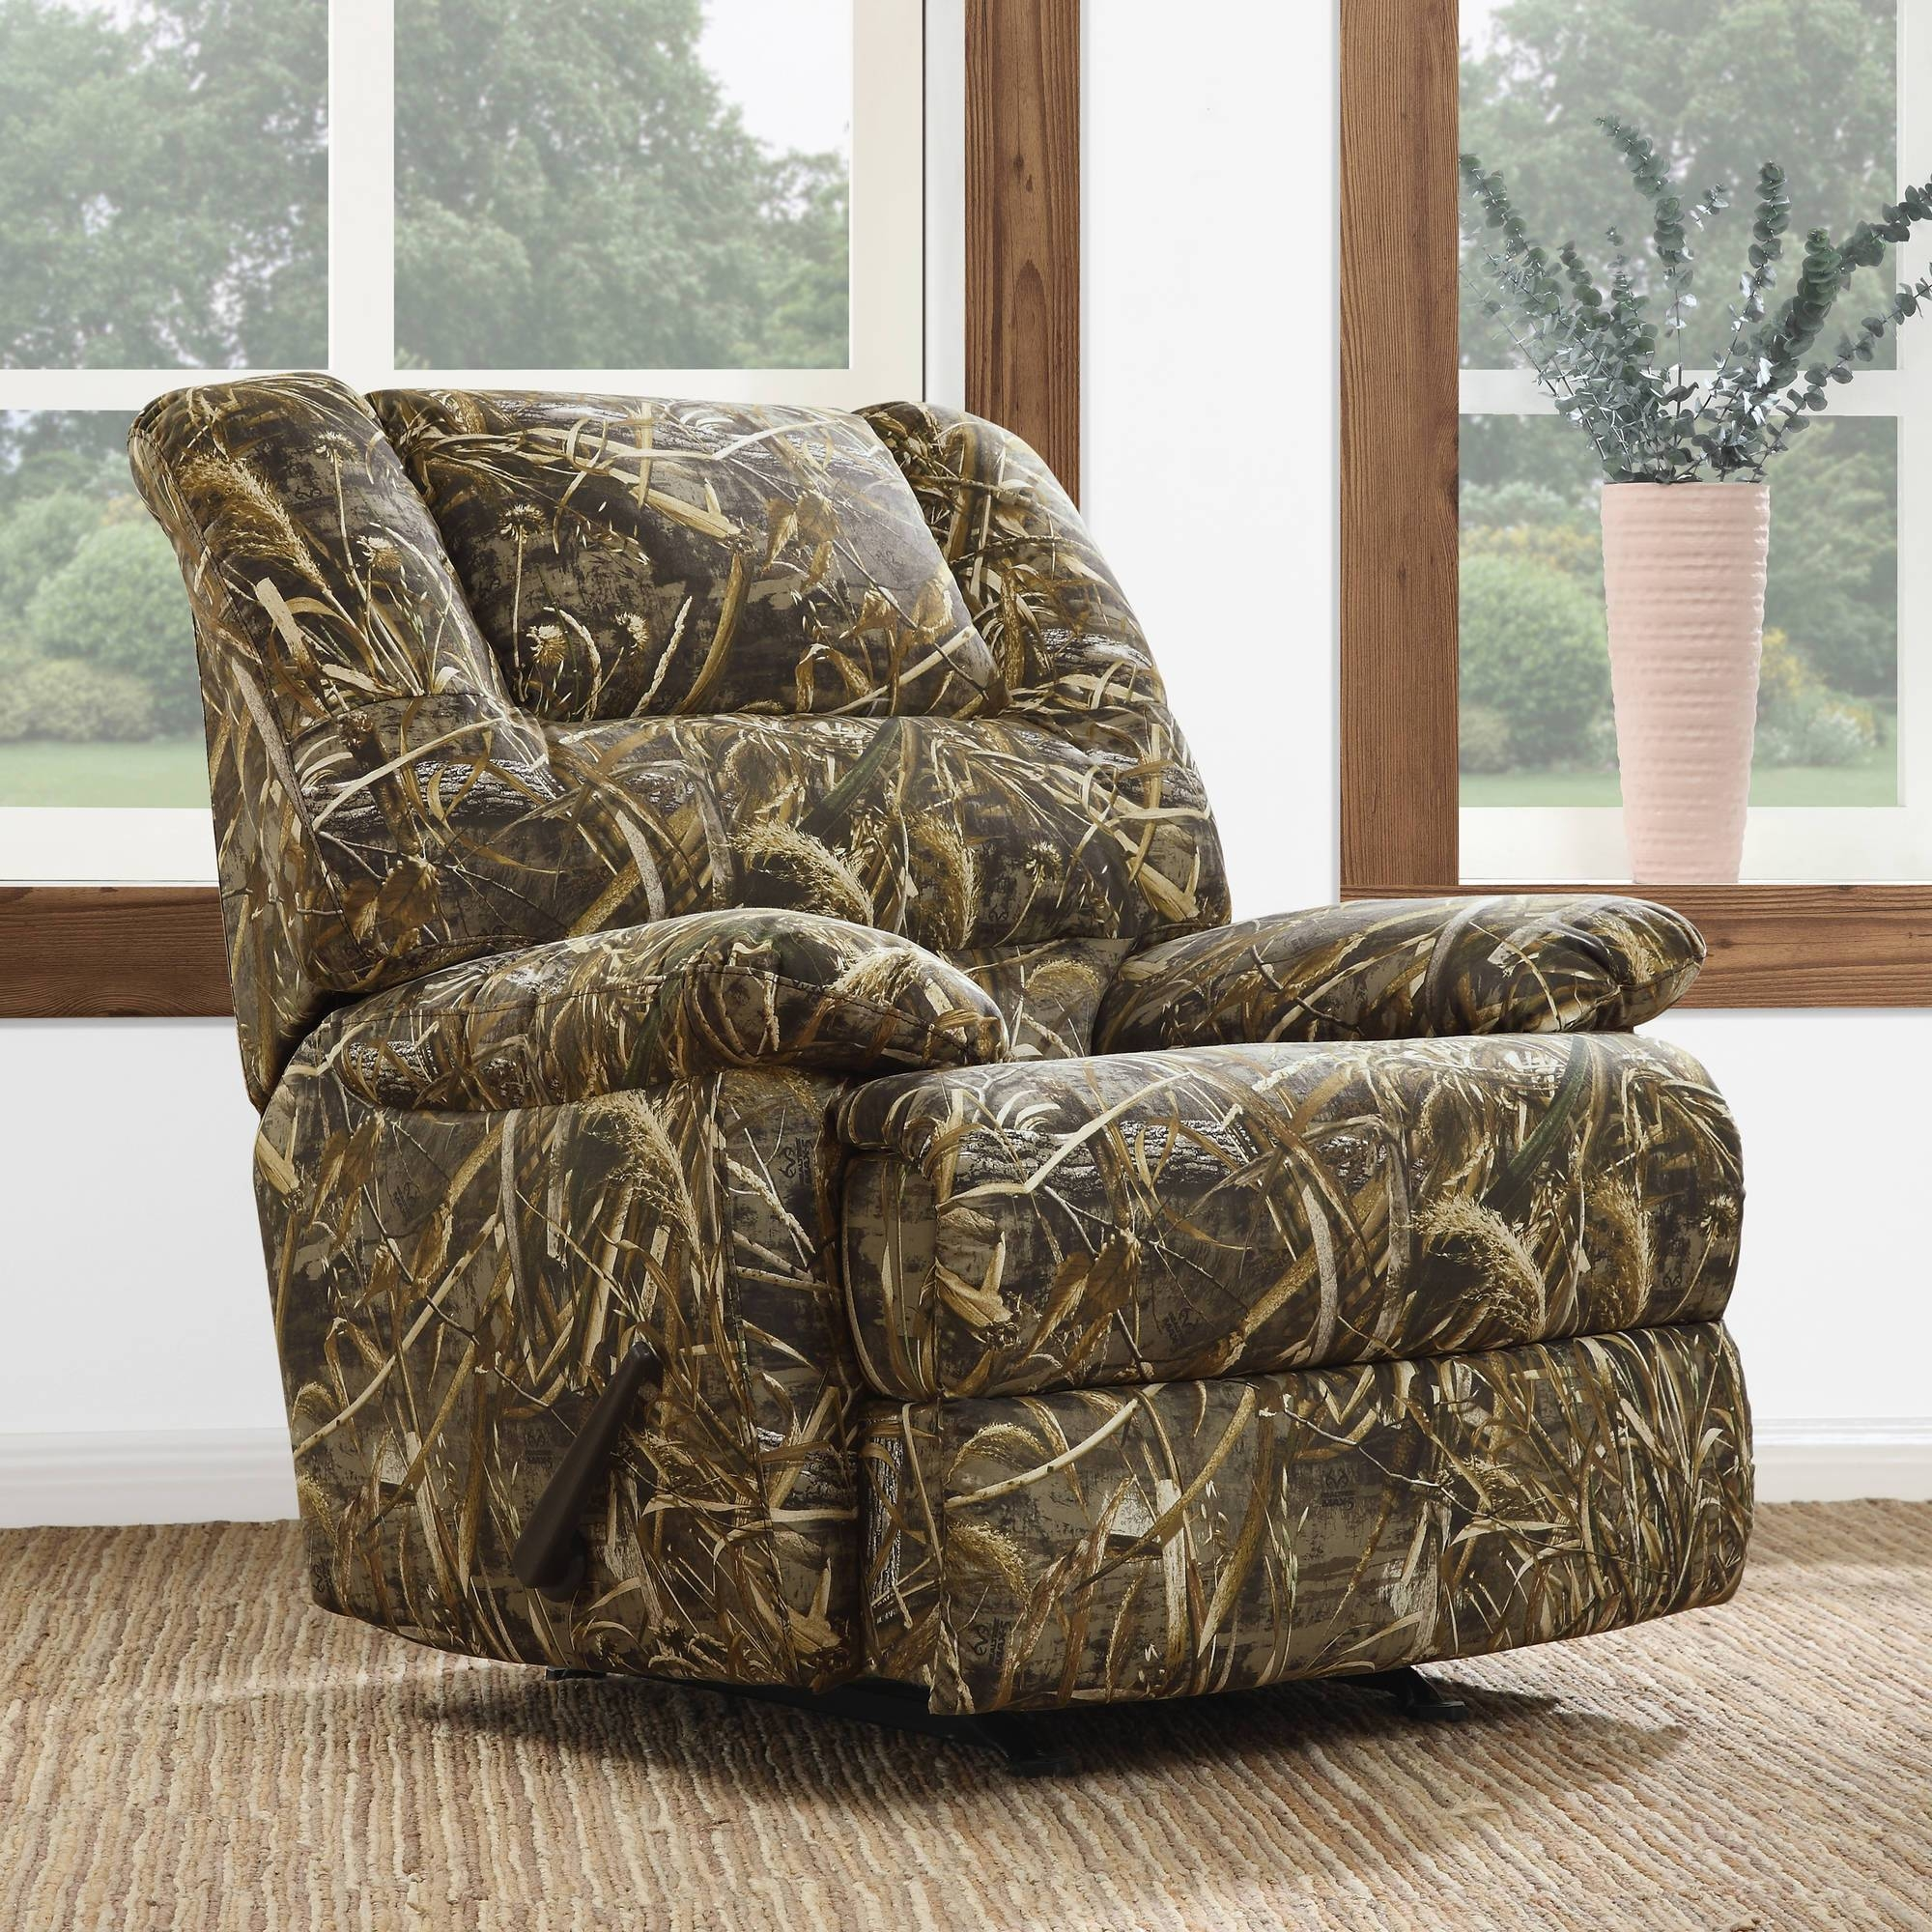 Dorel Living Realtree Camouflage Deluxe Recliner, Camo – Walmart With Camo Reclining Sofas (View 7 of 15)